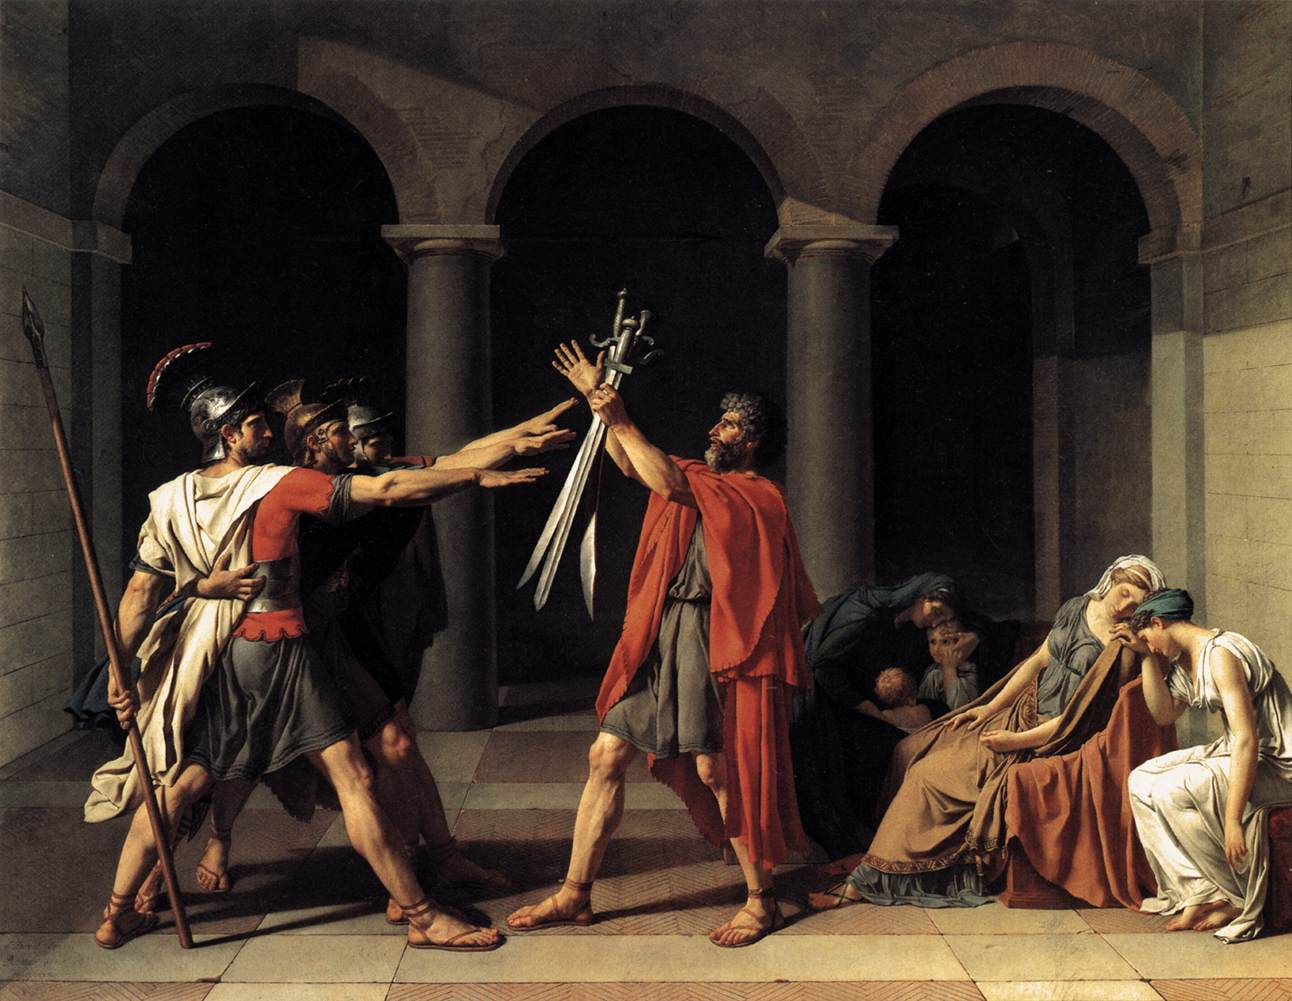 http://upload.wikimedia.org/wikipedia/commons/b/bb/David-Oath_of_the_Horatii-1784.jpg